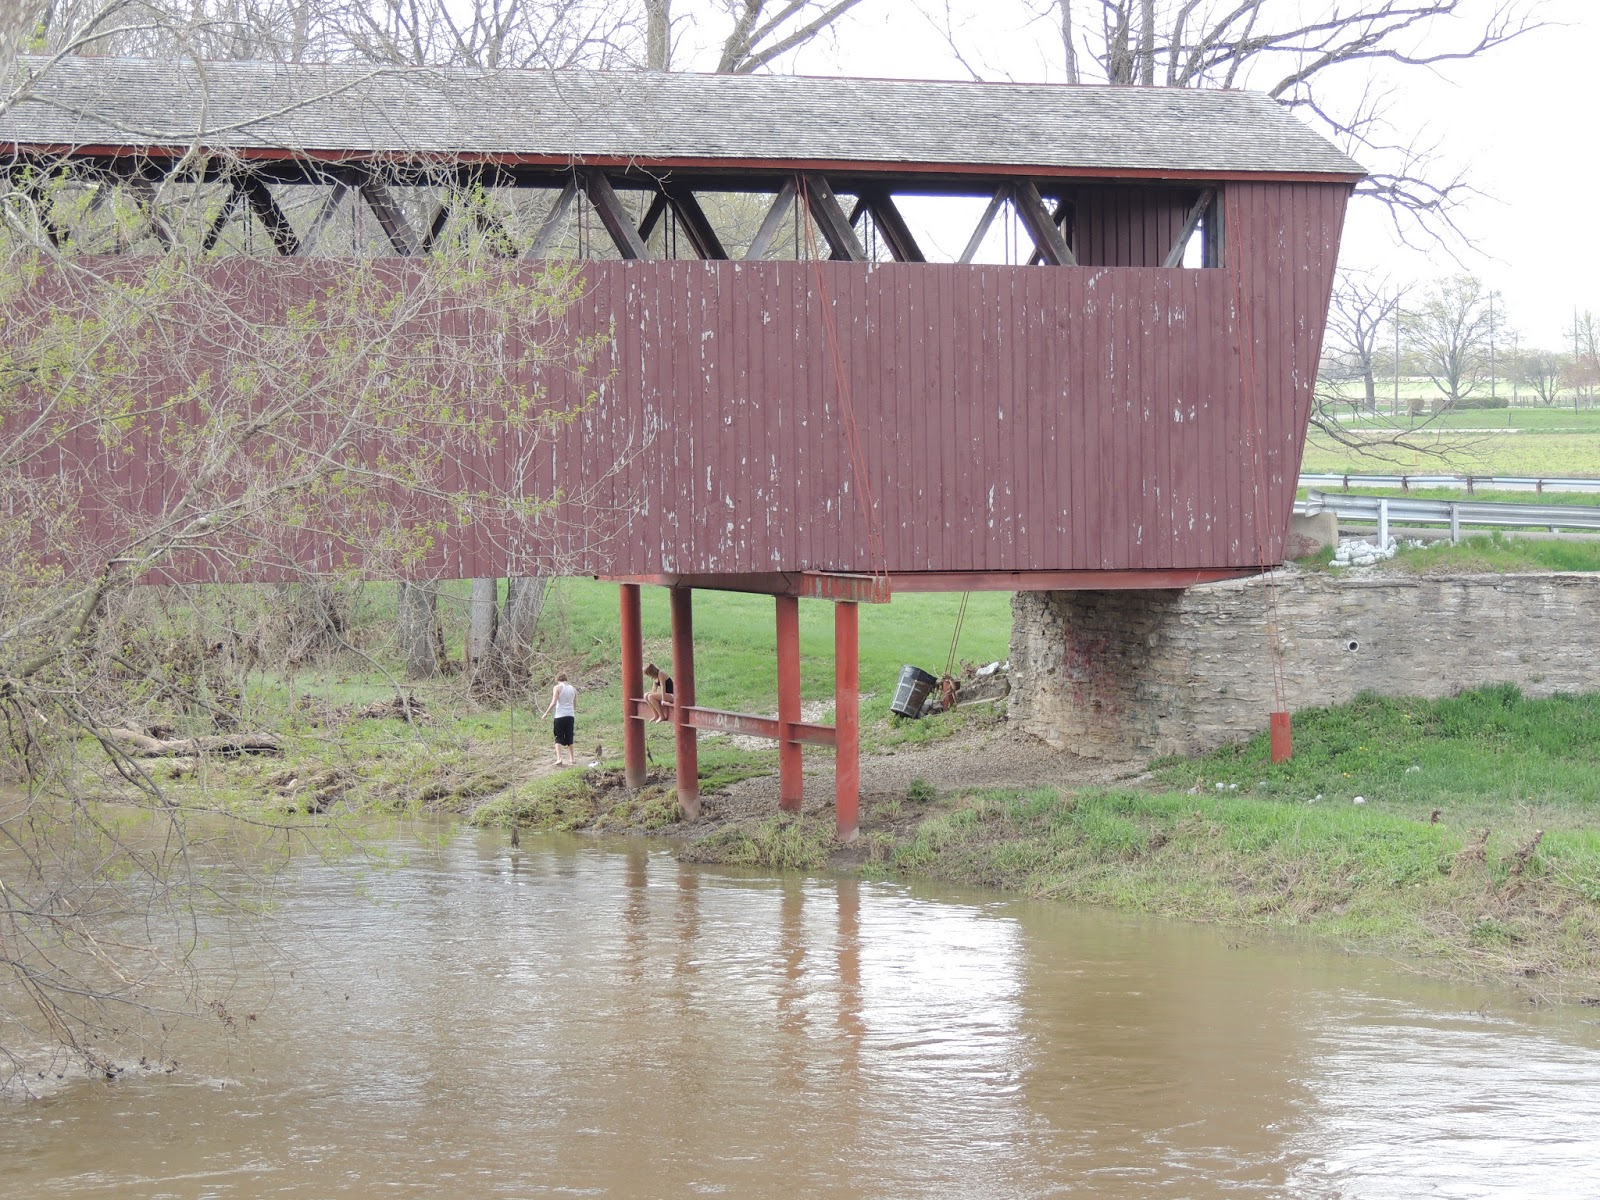 same with the roann covered bridge there were kids playing under it the bridge could use a good coat of paint